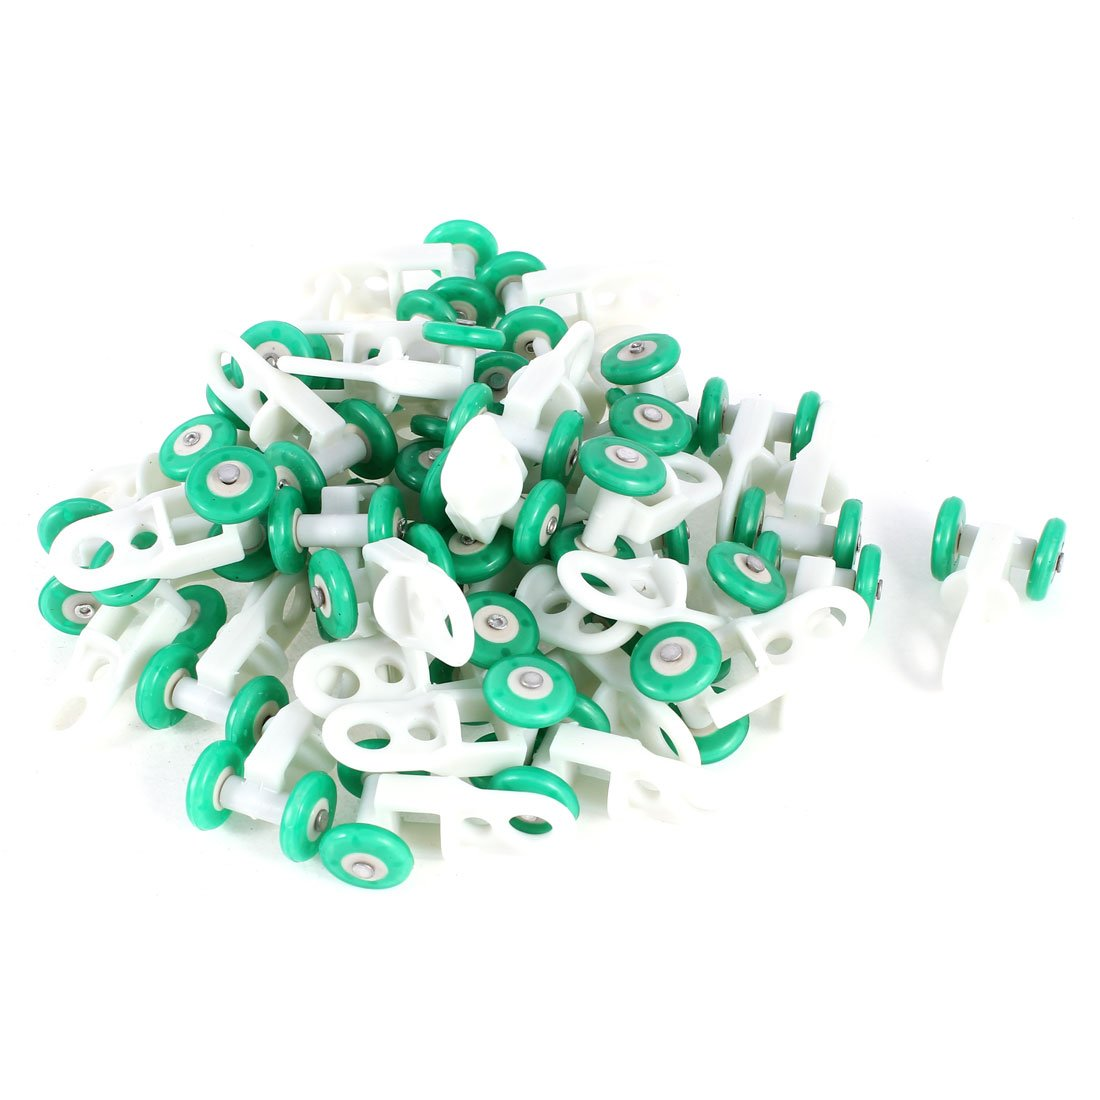 uxcell® Plastic Wheels Curtain Track Rollers 0.5 Inch Dia 40 Pcs Green White SYNCELEC005817